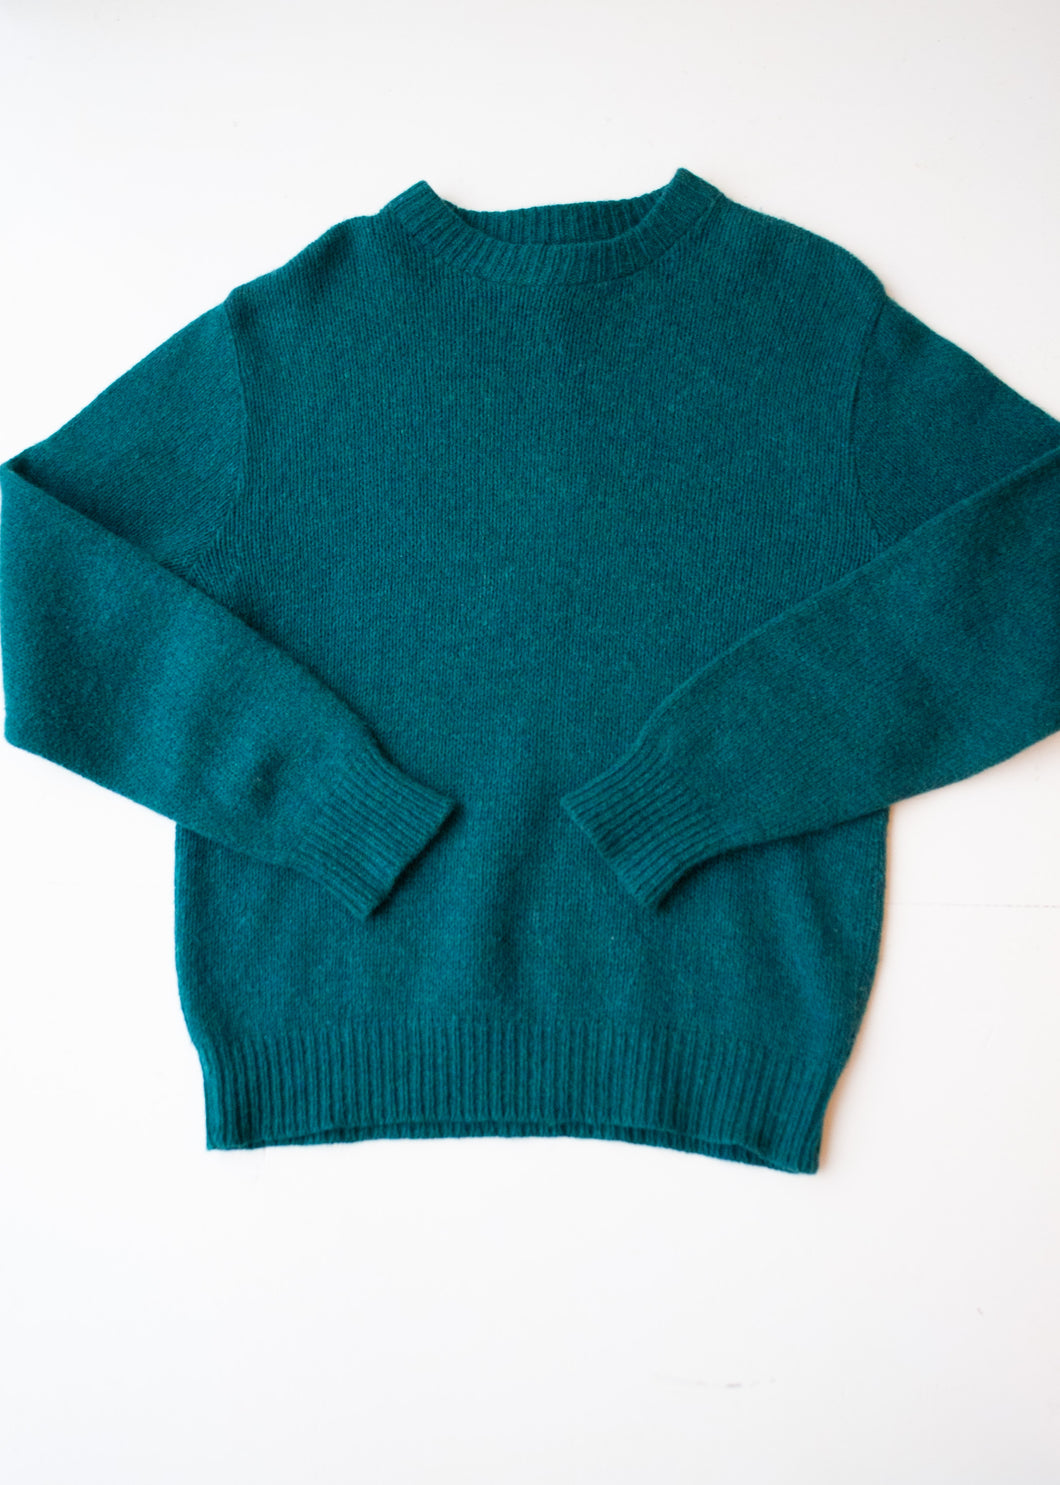 LL Bean Green Wool Sweater, Medium